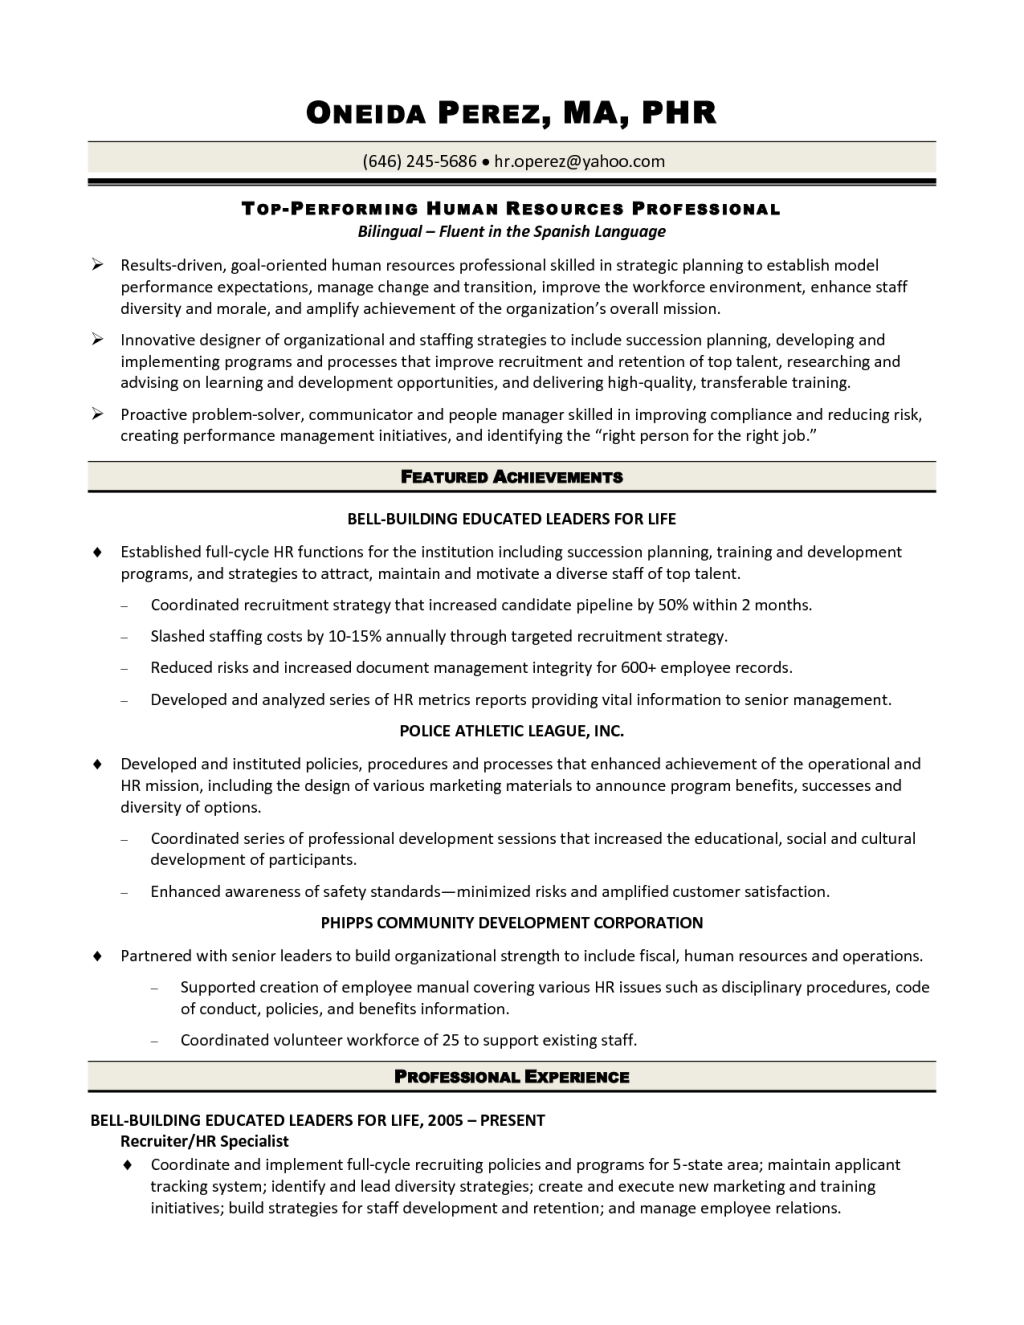 Cover letter for hr generalist. Are you looking for a guide on how ...